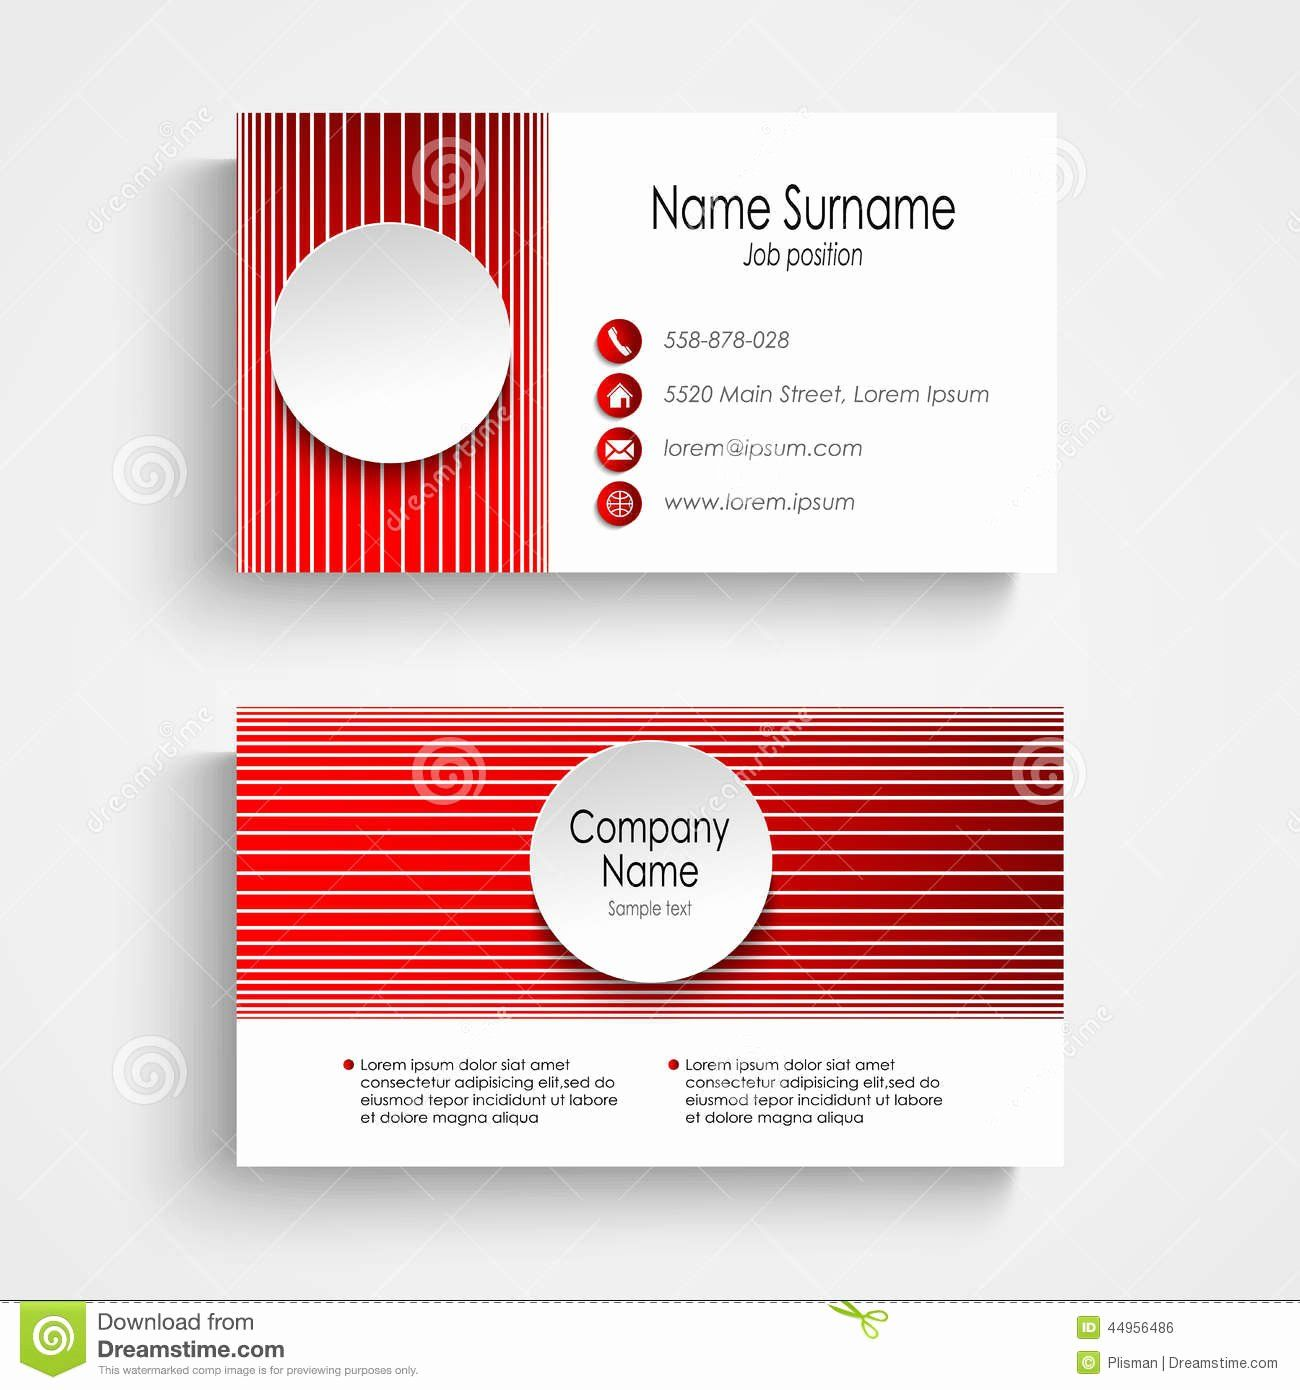 Round Business Cards Template Lovely Modern Red Round Business Card Template Stock Vector Round Business Cards Card Template Cards